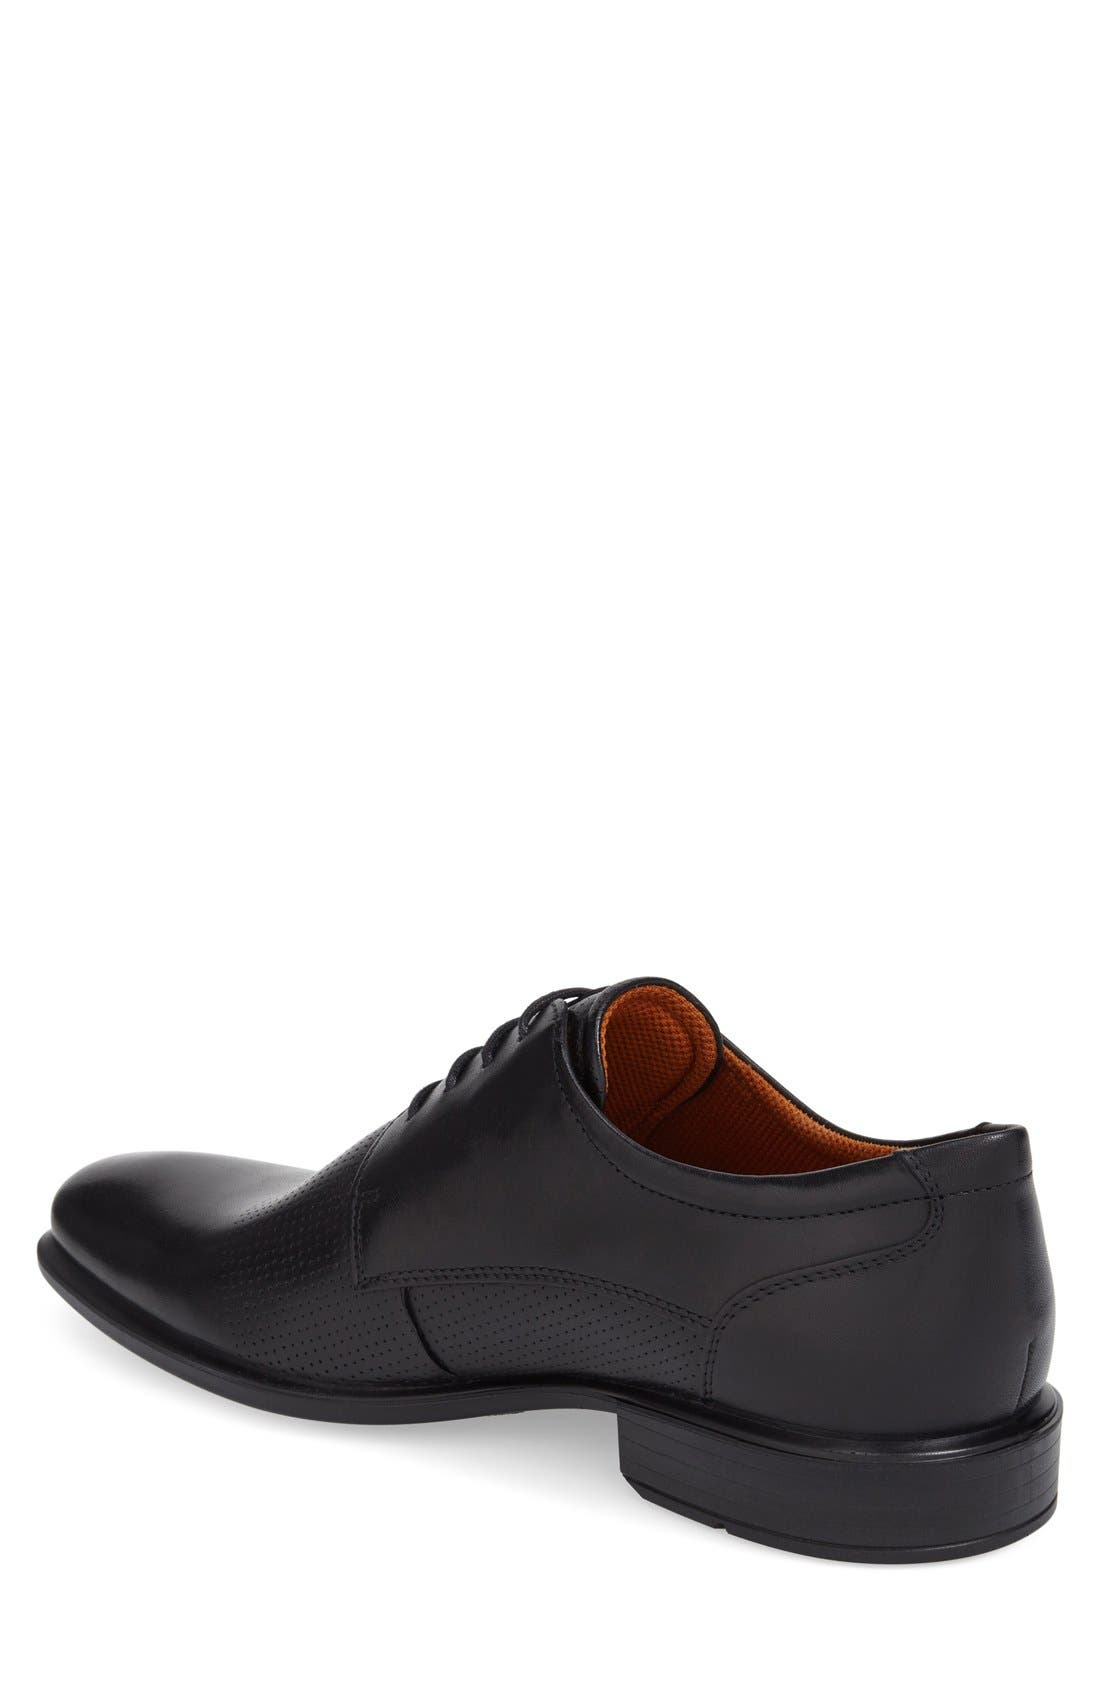 'Cairo' Perforated Plain Toe Derby,                             Alternate thumbnail 2, color,                             001